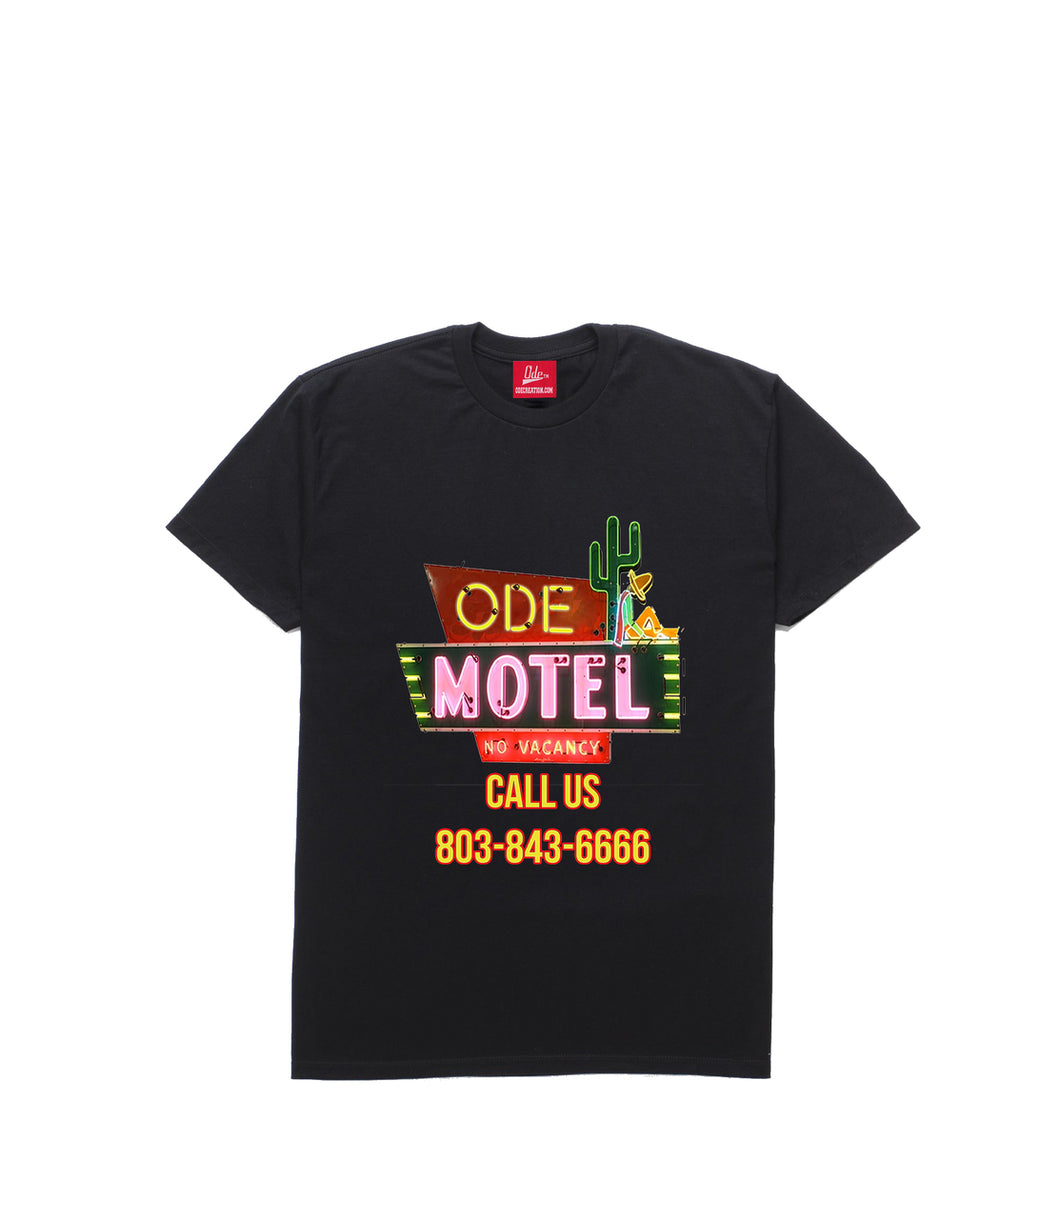 The Ode Motel Black T-shirt